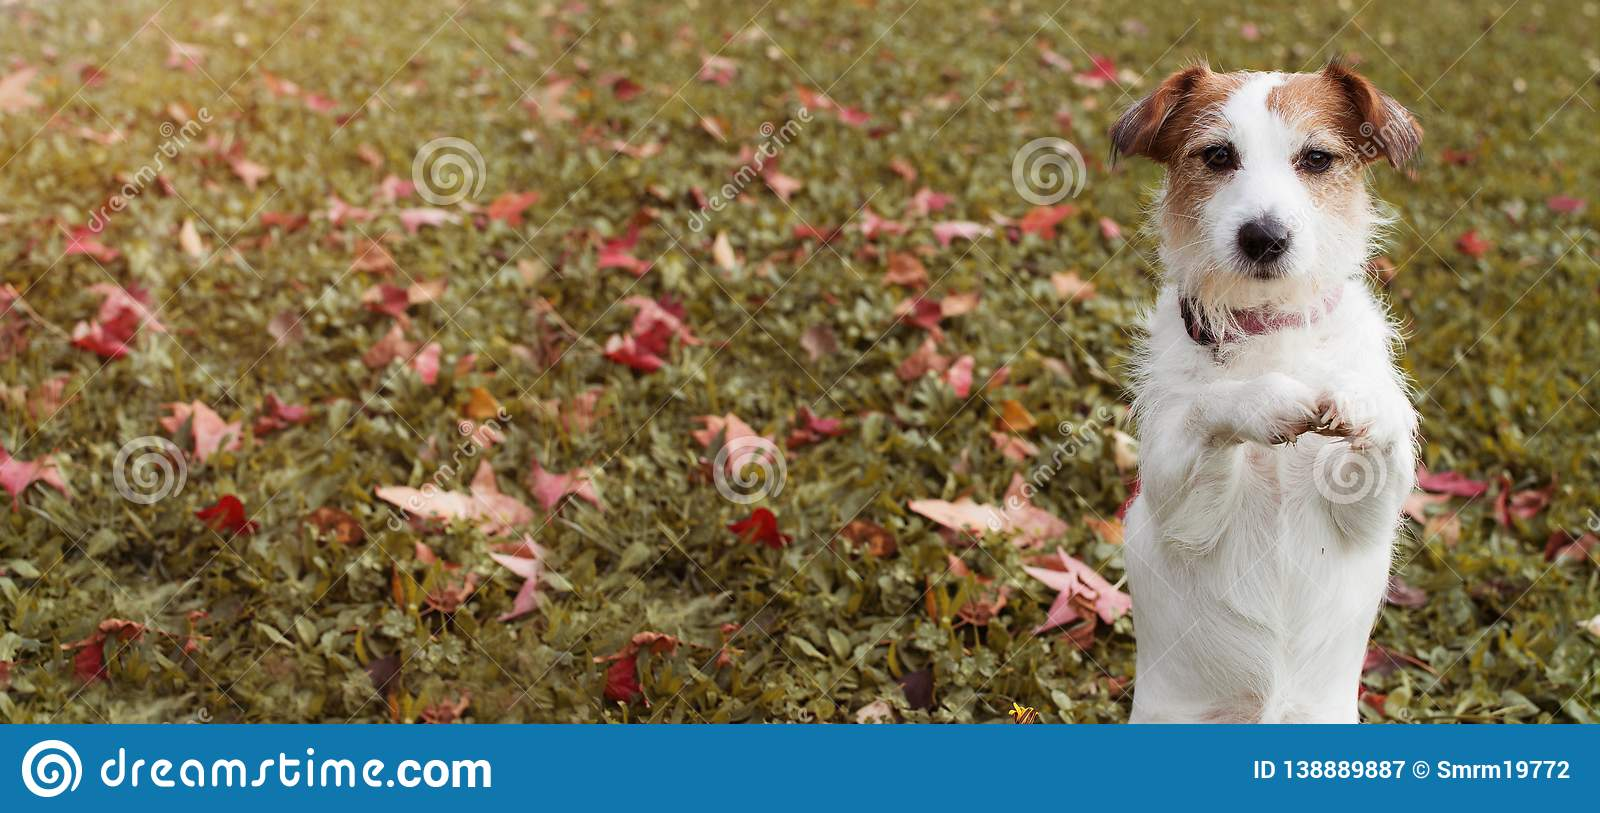 WEBSIDE BANNER AUTUMN DOG. JACK RUSSELL PUPPY STANDING ON TWO HIND LEGS AND PRAYING WITH ITS FRONT PAWS ON FALL LEAVES GRASS